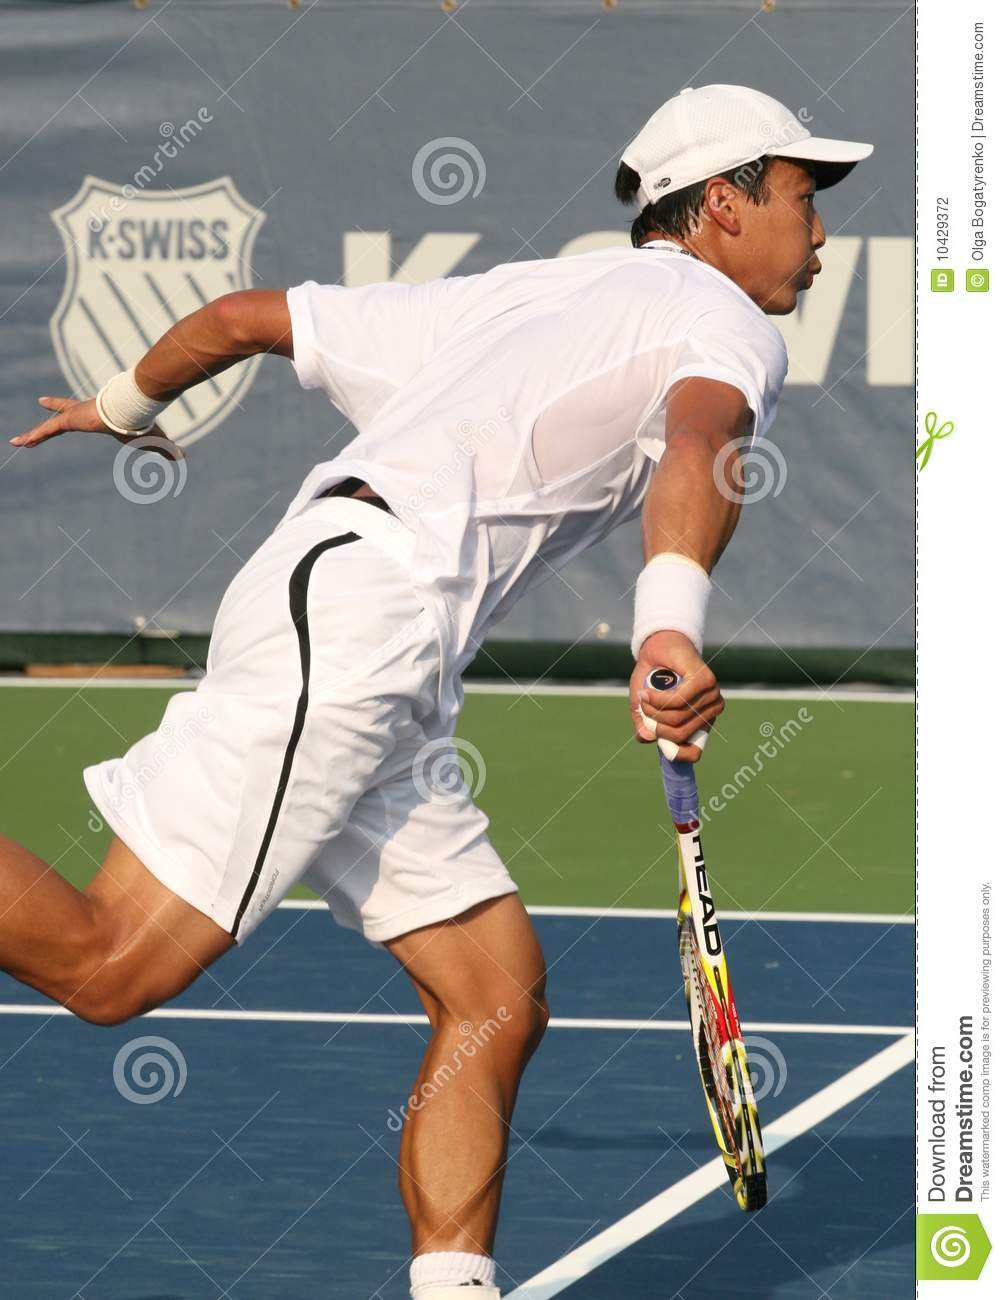 Professional tennis photography